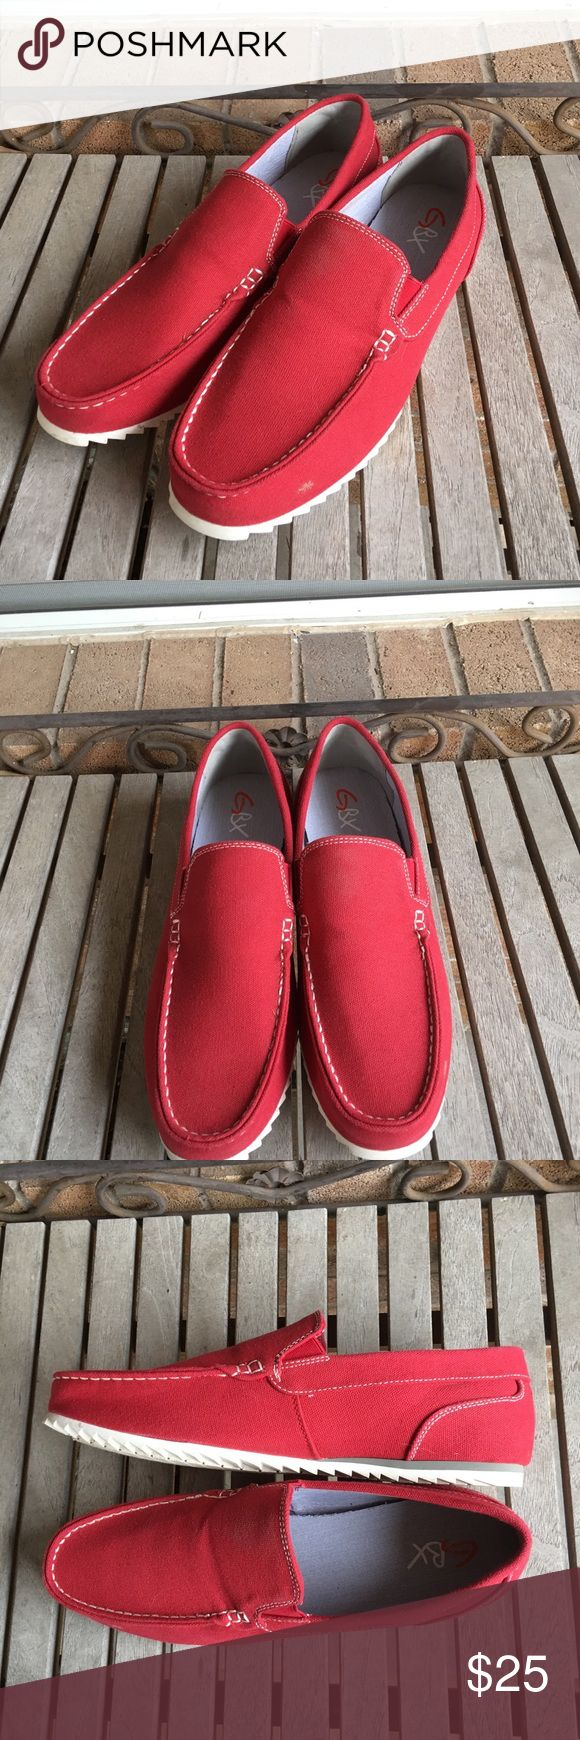 Men's GBX Harpoon Moc Toe Red Canvas Loafers Men's GBX Harpoon Moc Toe Red Canvas Slip On Loafer. Great condition! Very comfy. Great for the spring and summer. Canvas uppers, rubber soles. Boat shoes, deck shoes, flats, slide on. GBX Shoes Loafers & Slip-Ons